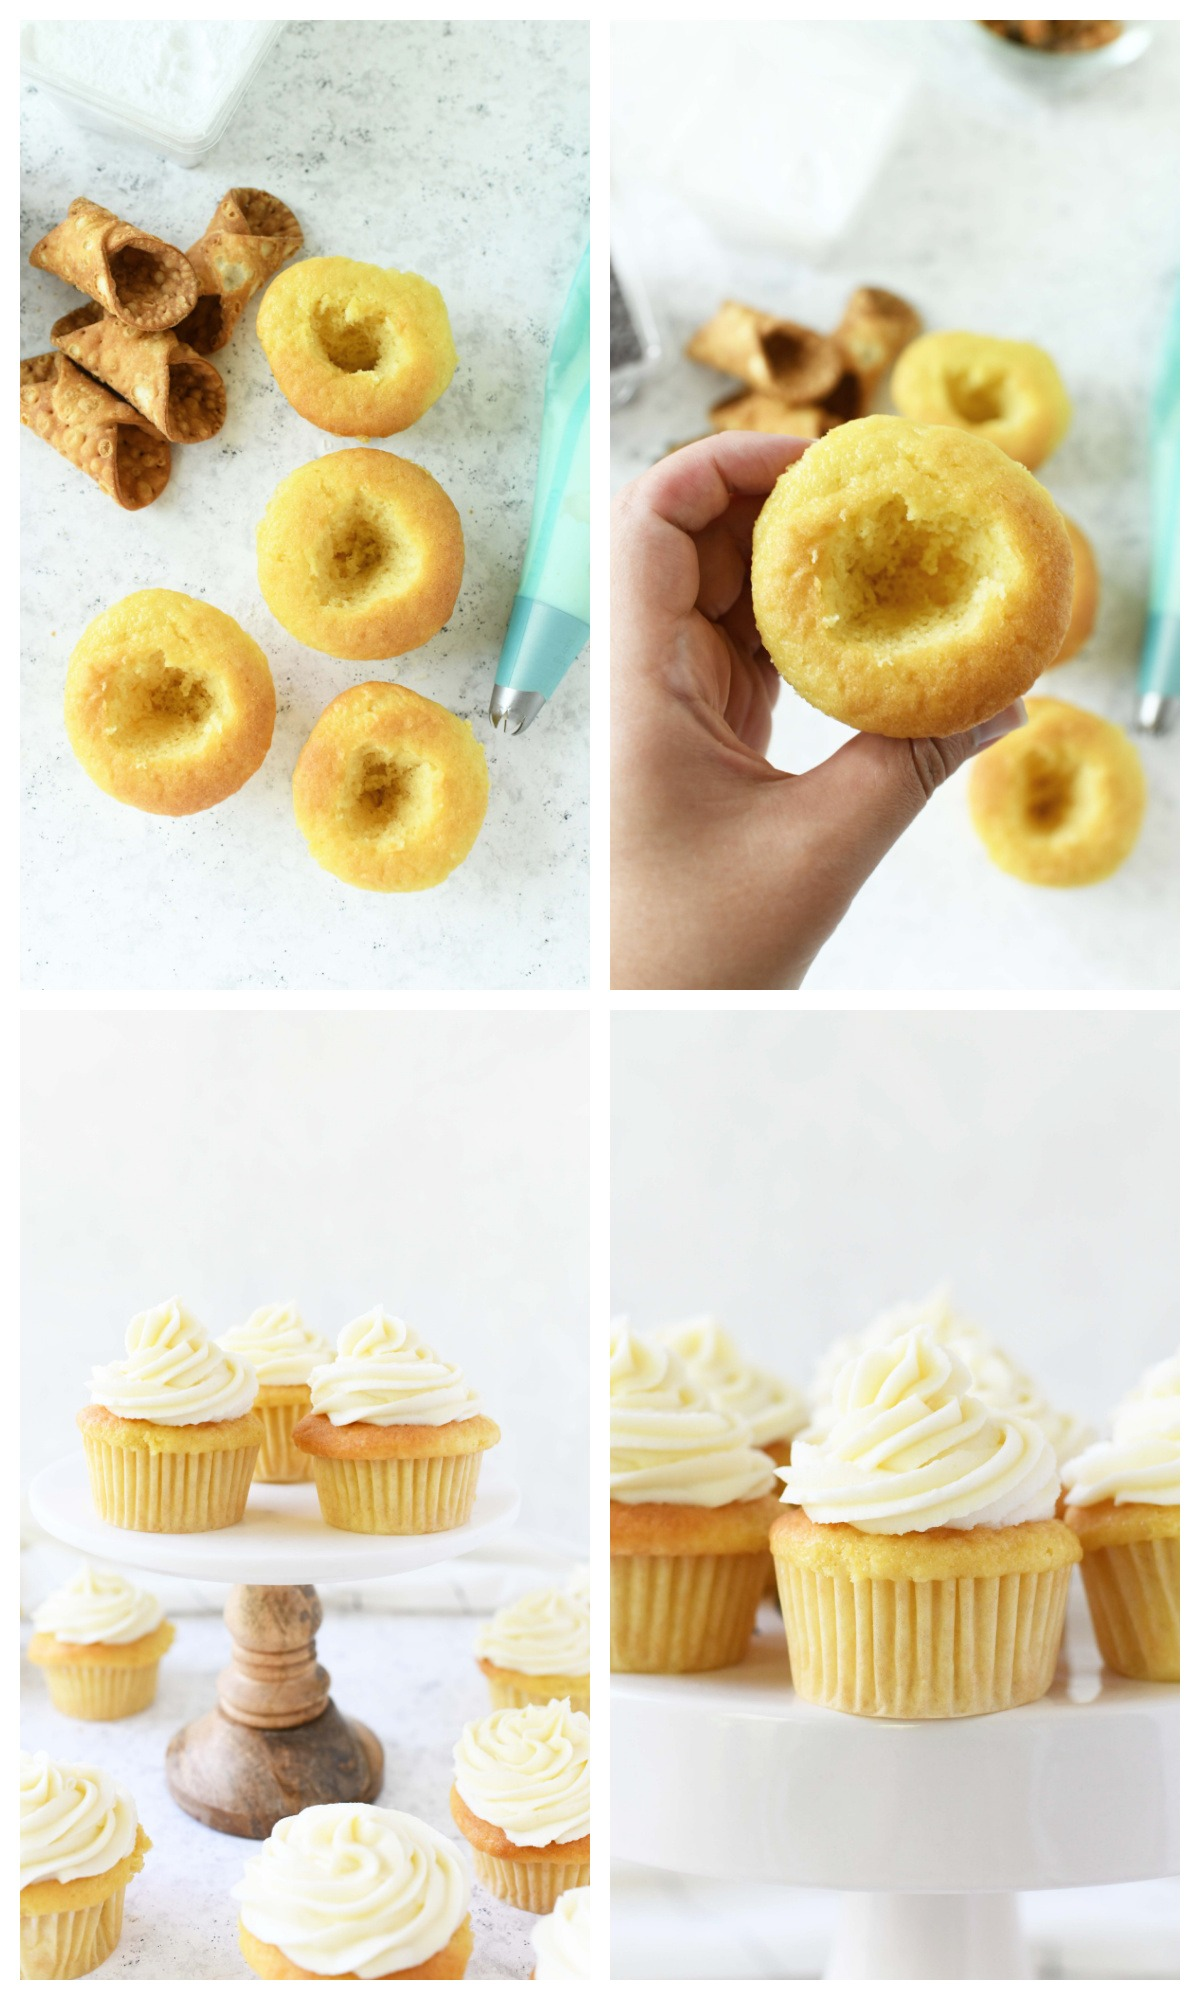 A four image collage showcasing how to make cannoli stuffed cupcakes.